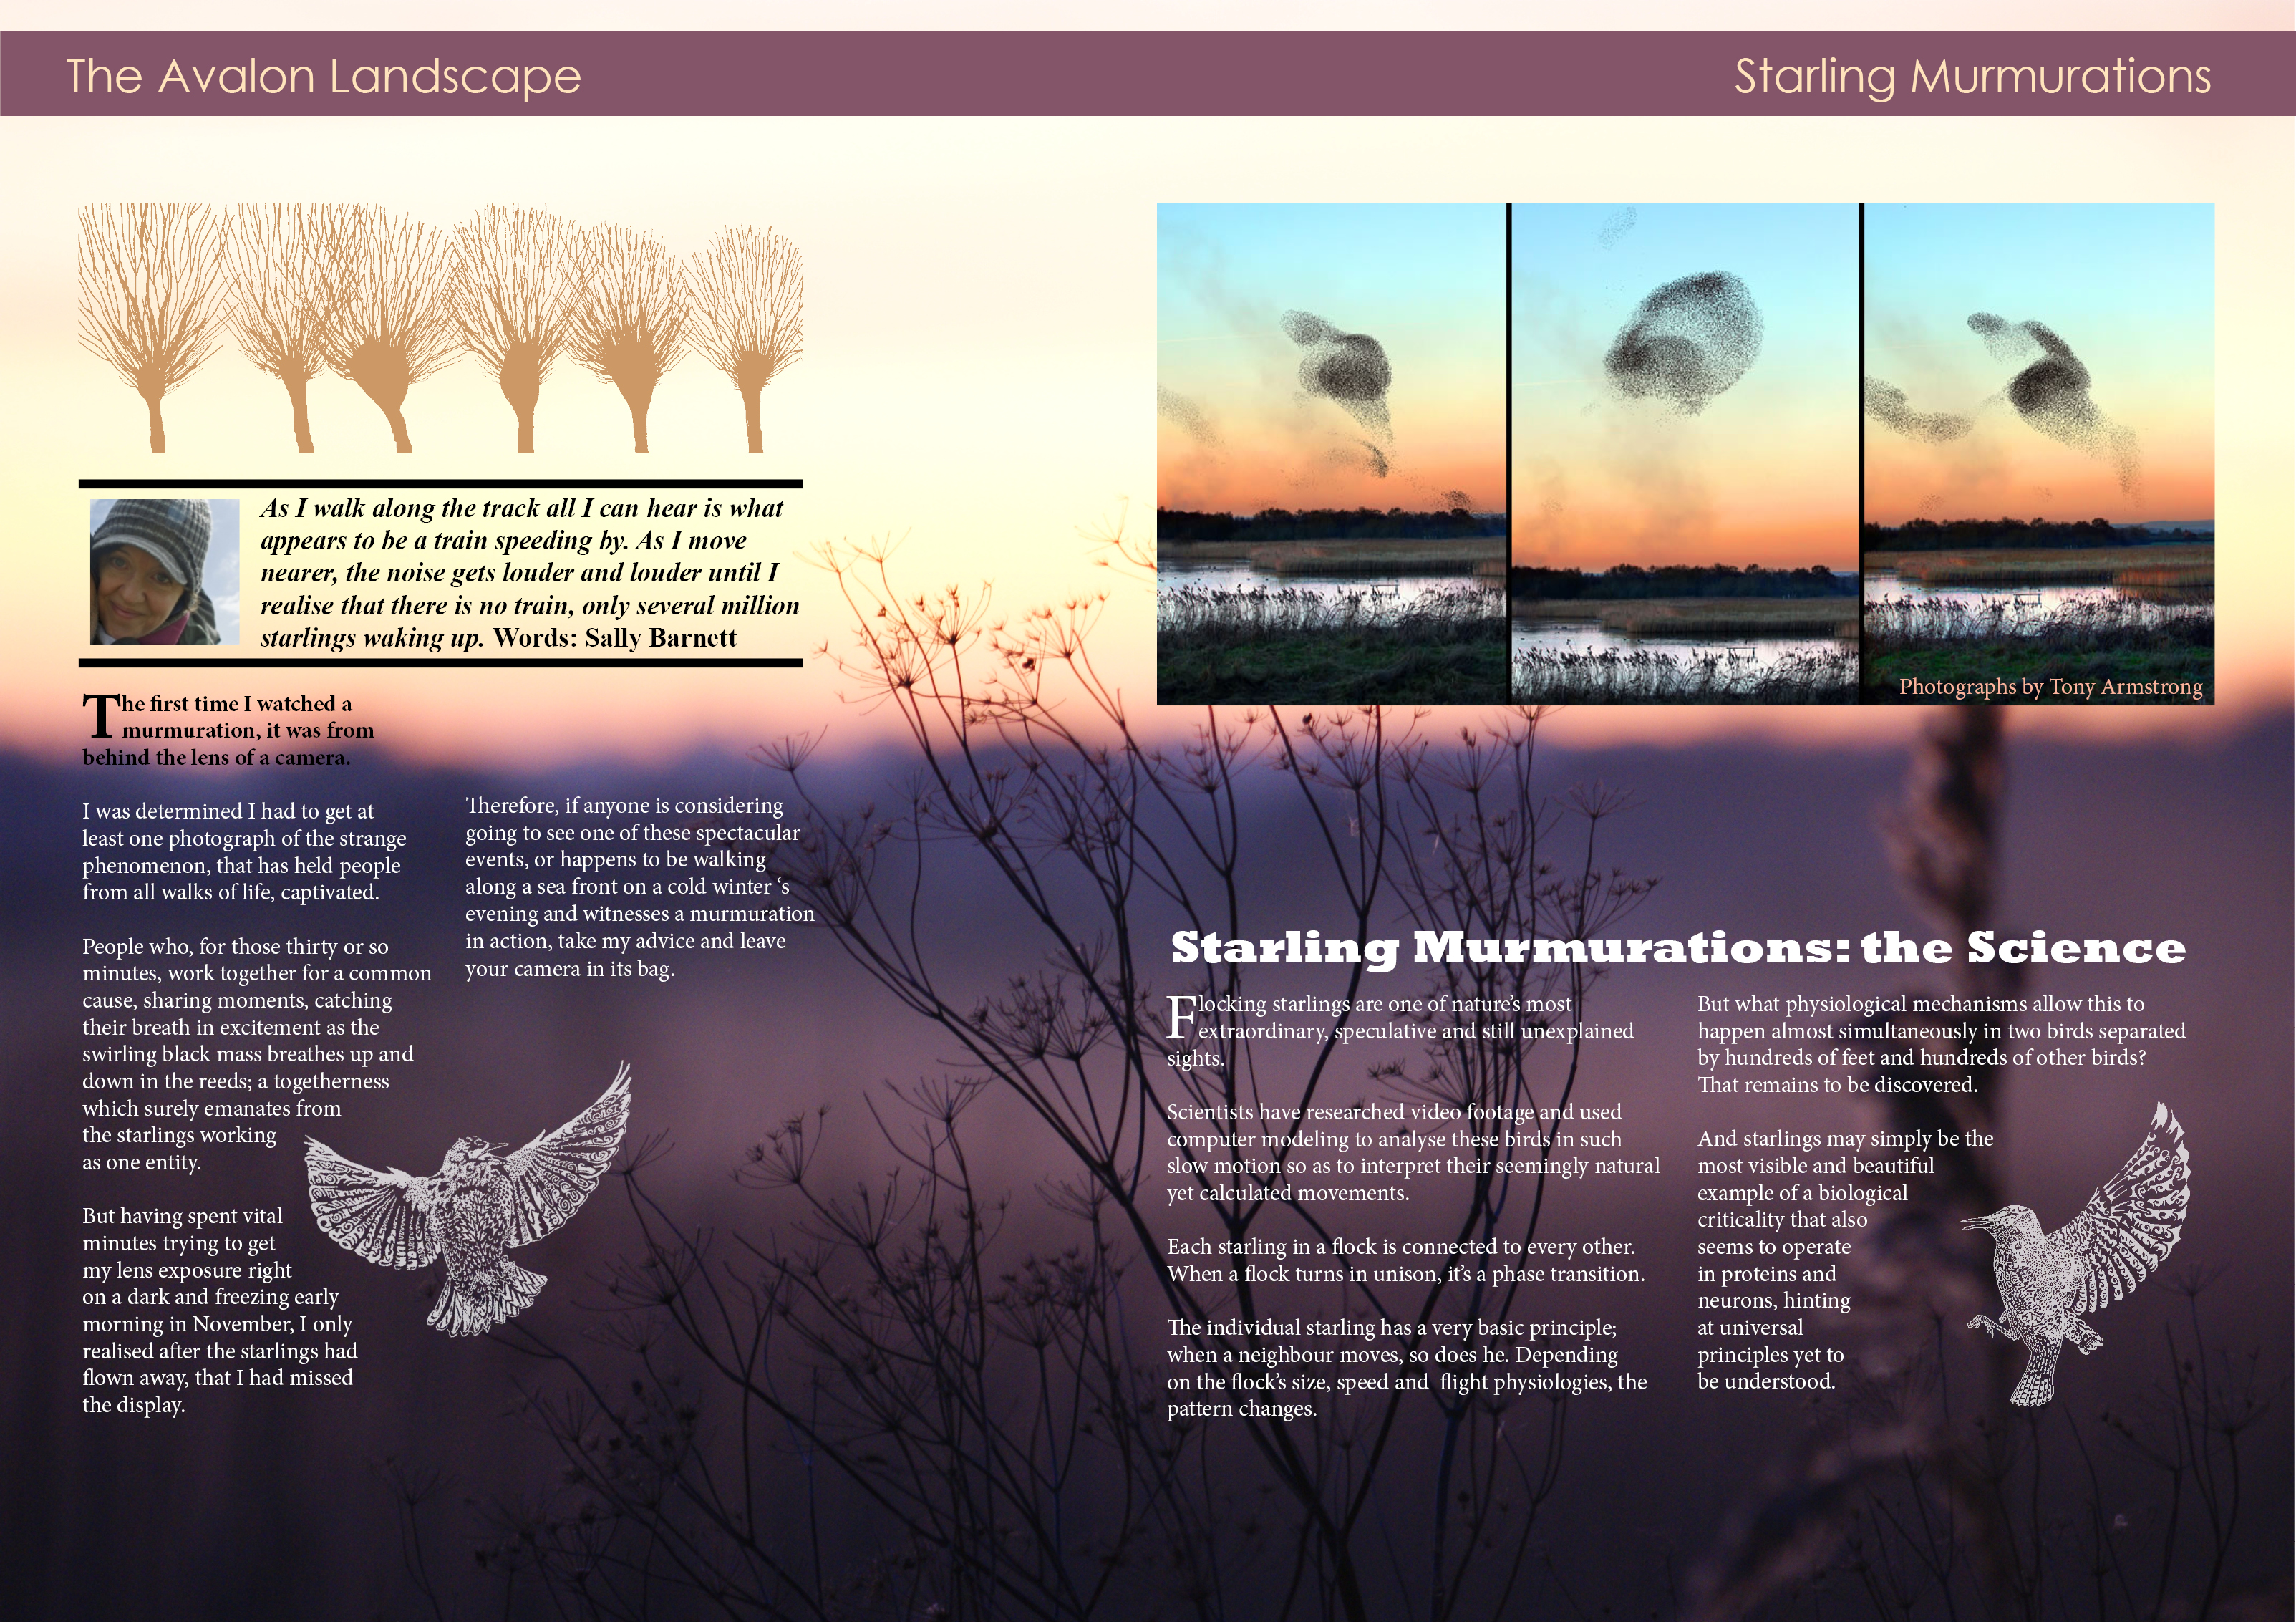 sally barnett photography of somerset levels, starling mormurations article for interactive magazine